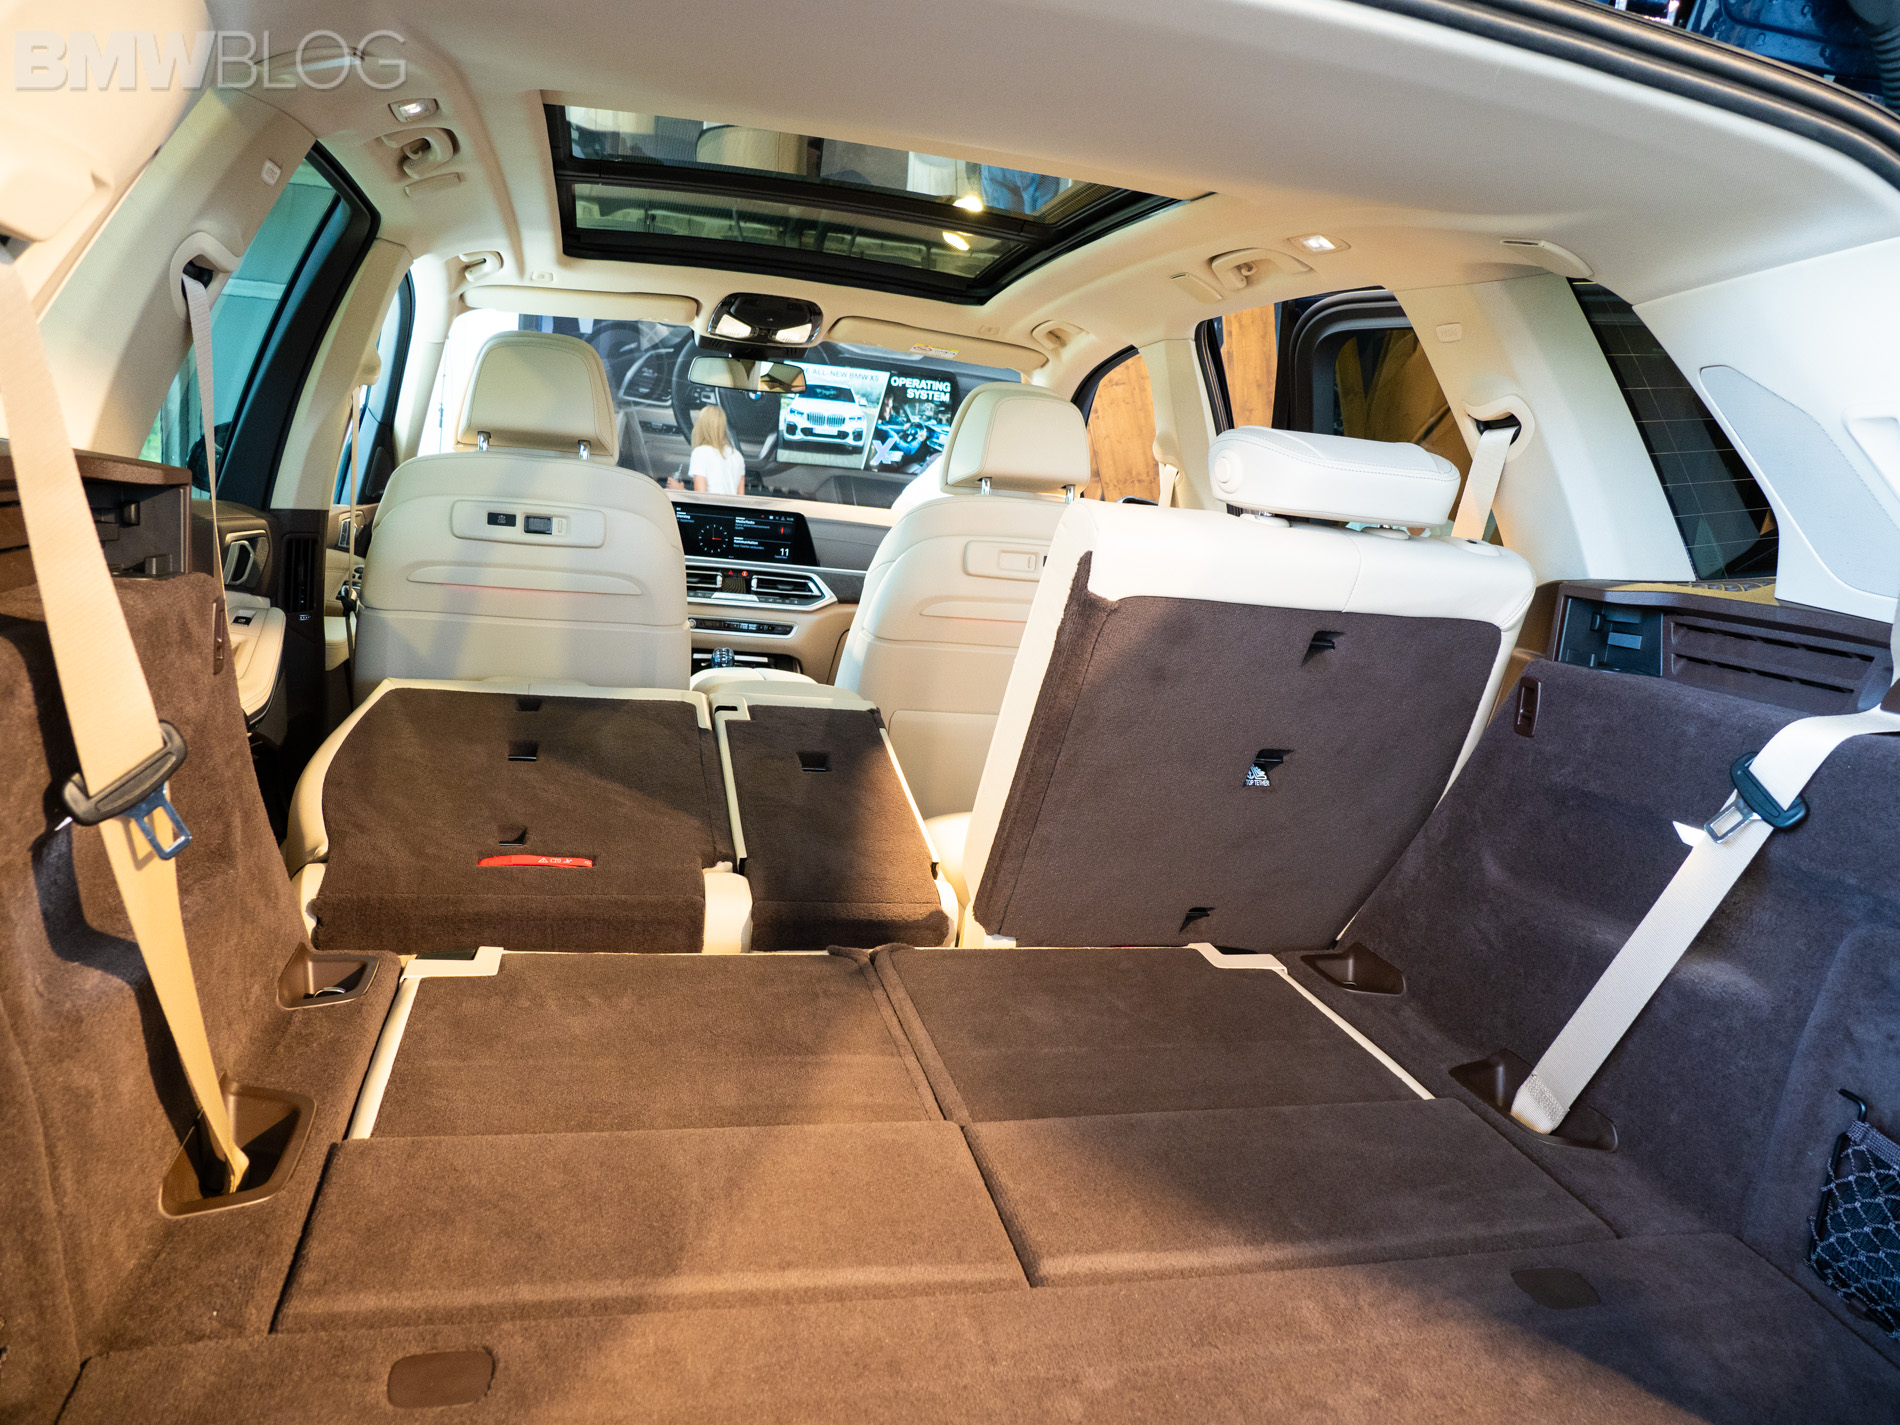 First Look At The Third Row Seat In The New Bmw X5